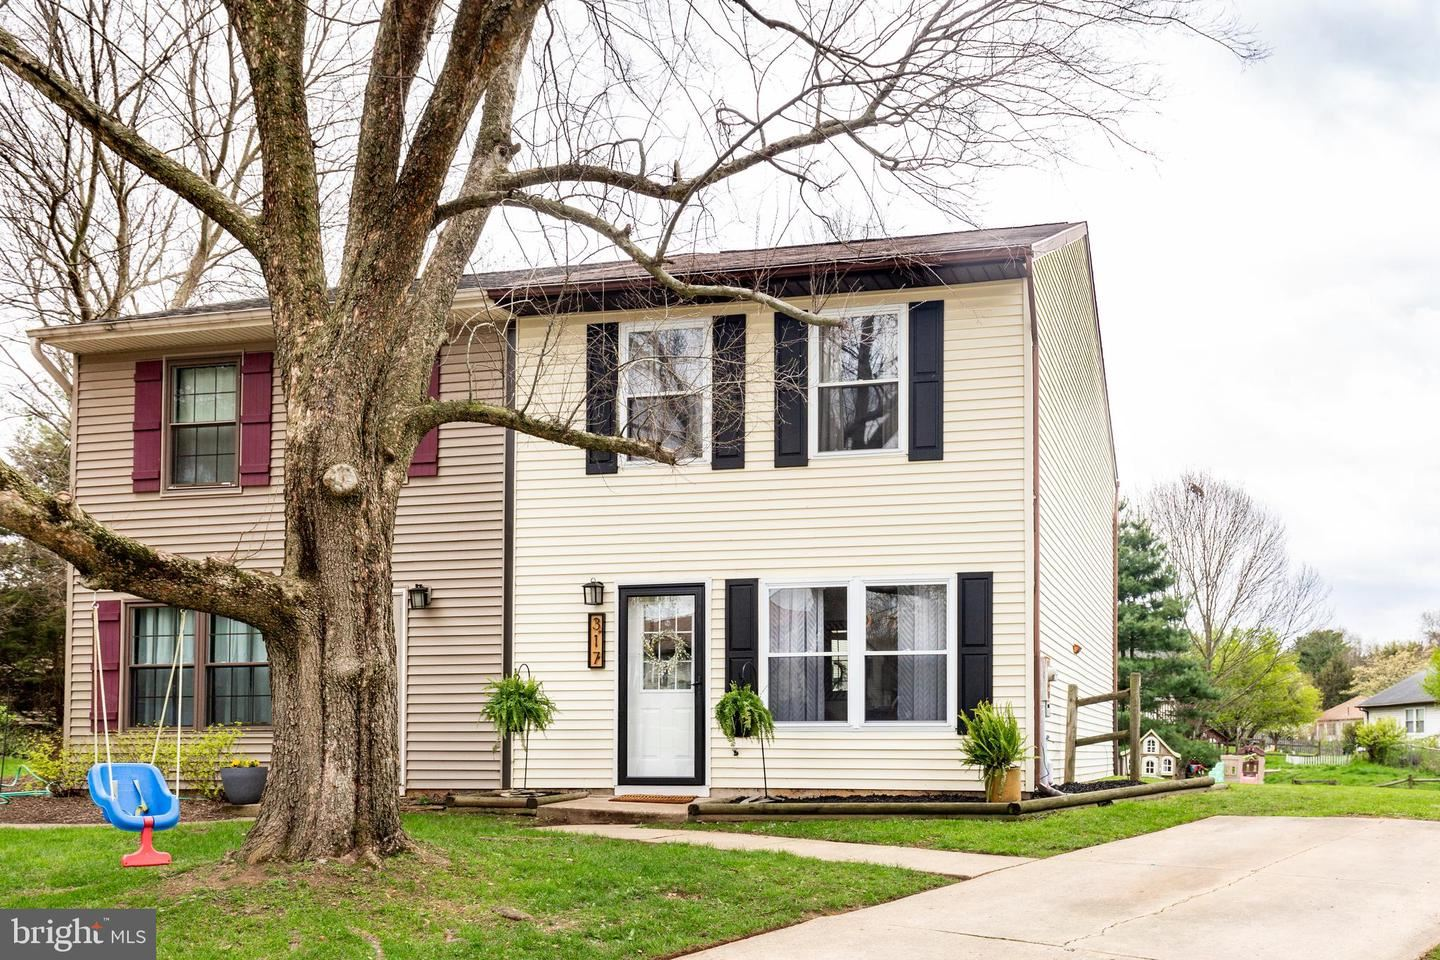 317 MAYFIELD CT, Westminster, MD 21158 - MLS#: MDCR203912